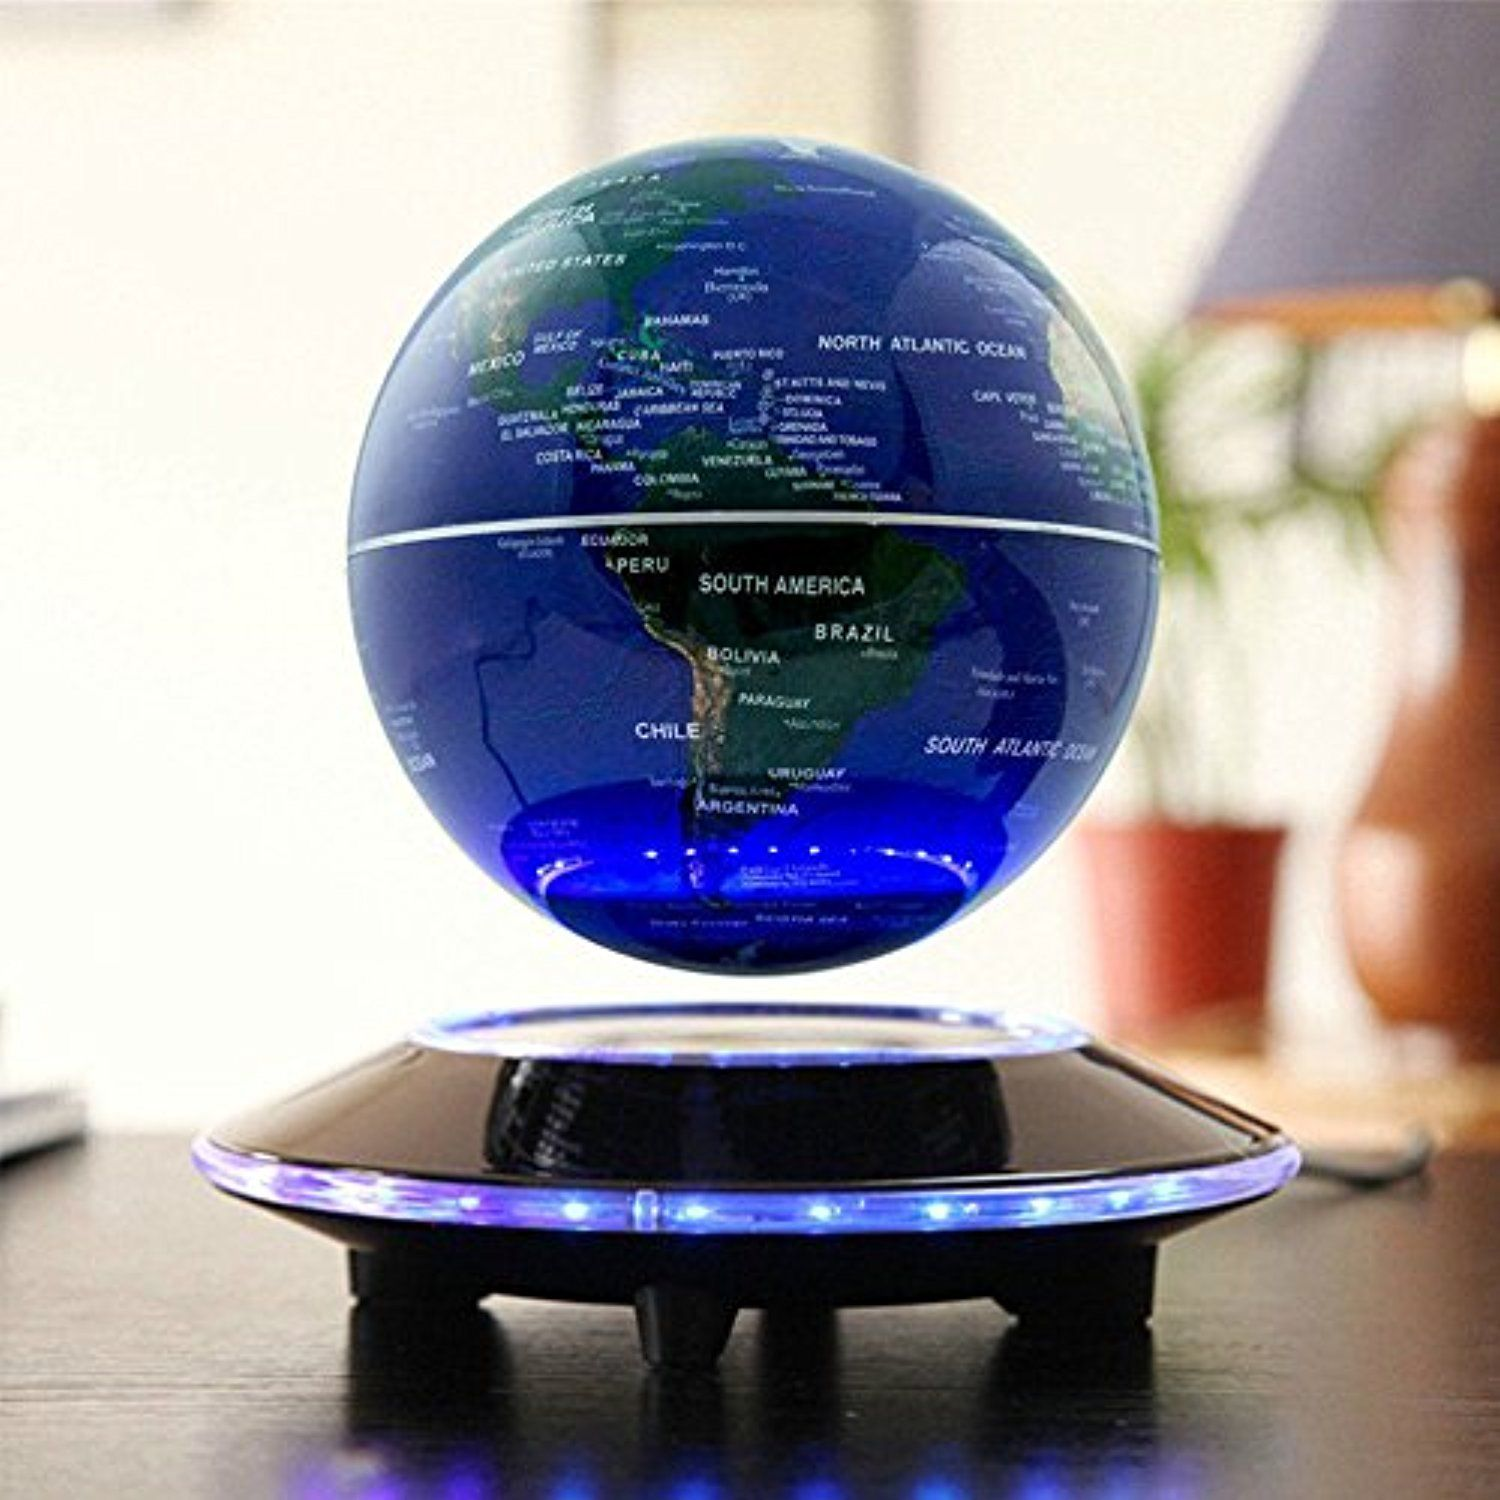 Magnetic globe sunkax easy magnetic levitation floating globe world magnetic globe sunkax easy magnetic levitation floating globe world map for education office decorationbirthday presentchristmas gift gumiabroncs Gallery